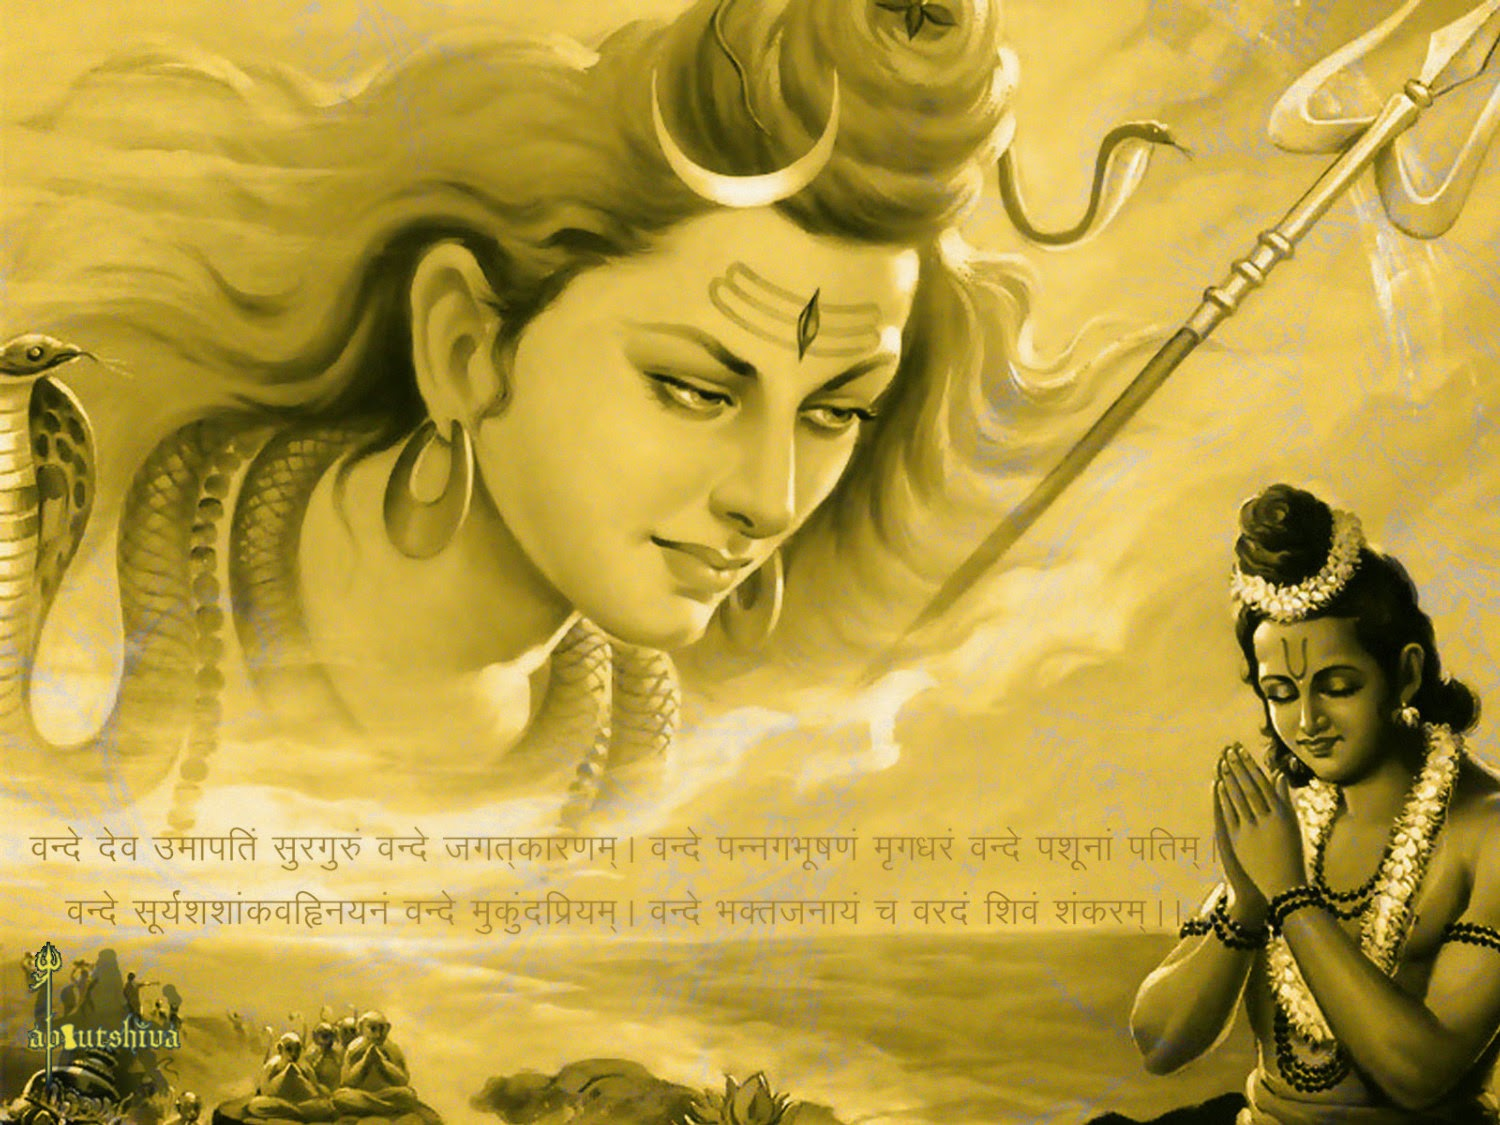 Lord Shiva Hd Images Shivji Wallpapers Of Shivratri Bhole Nath